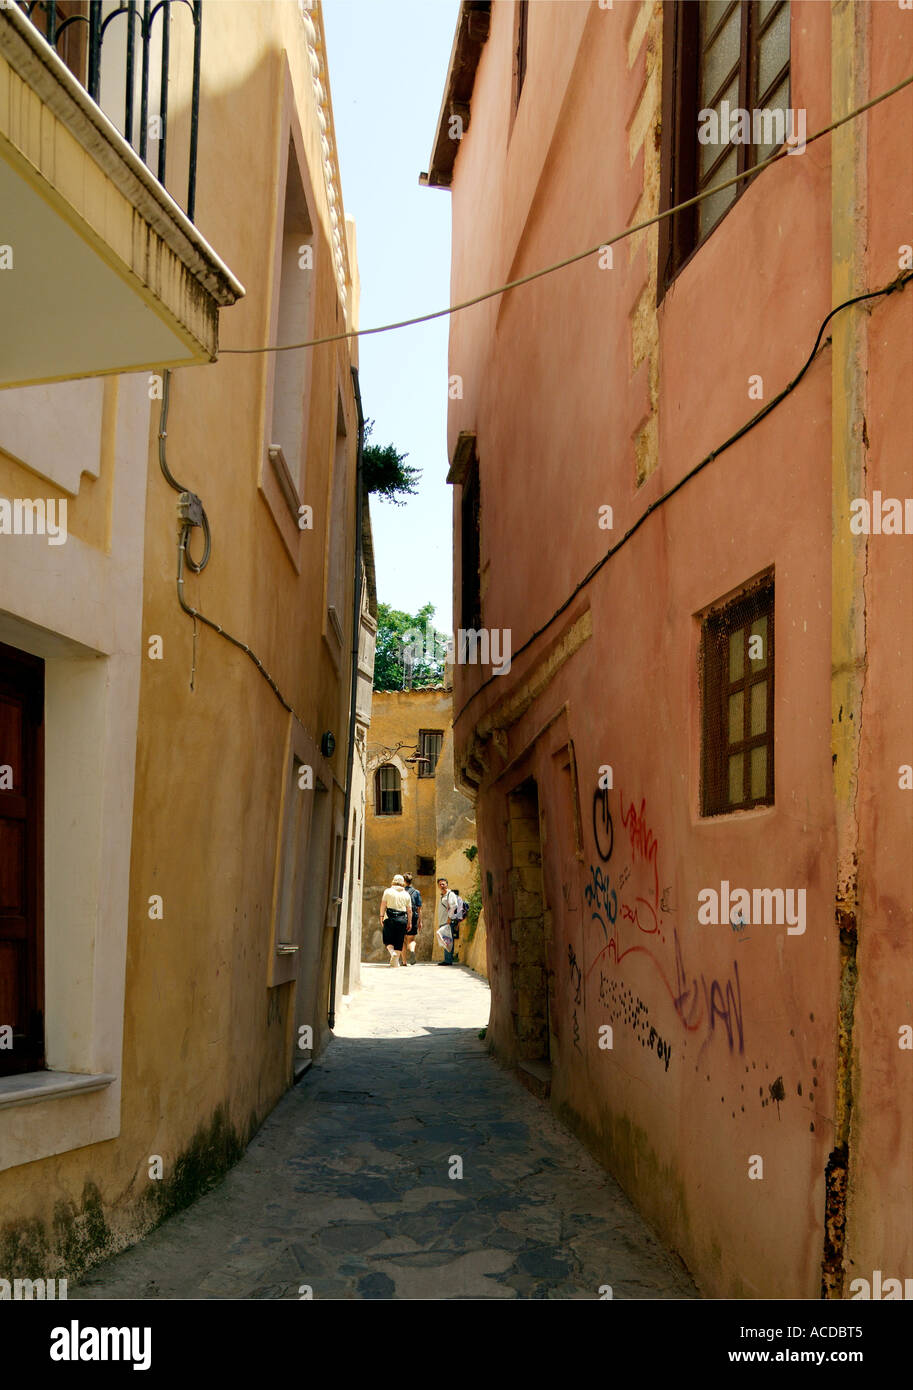 Two buildings leaning toward each other in narrow lane Chania Crete Greece - Stock Image